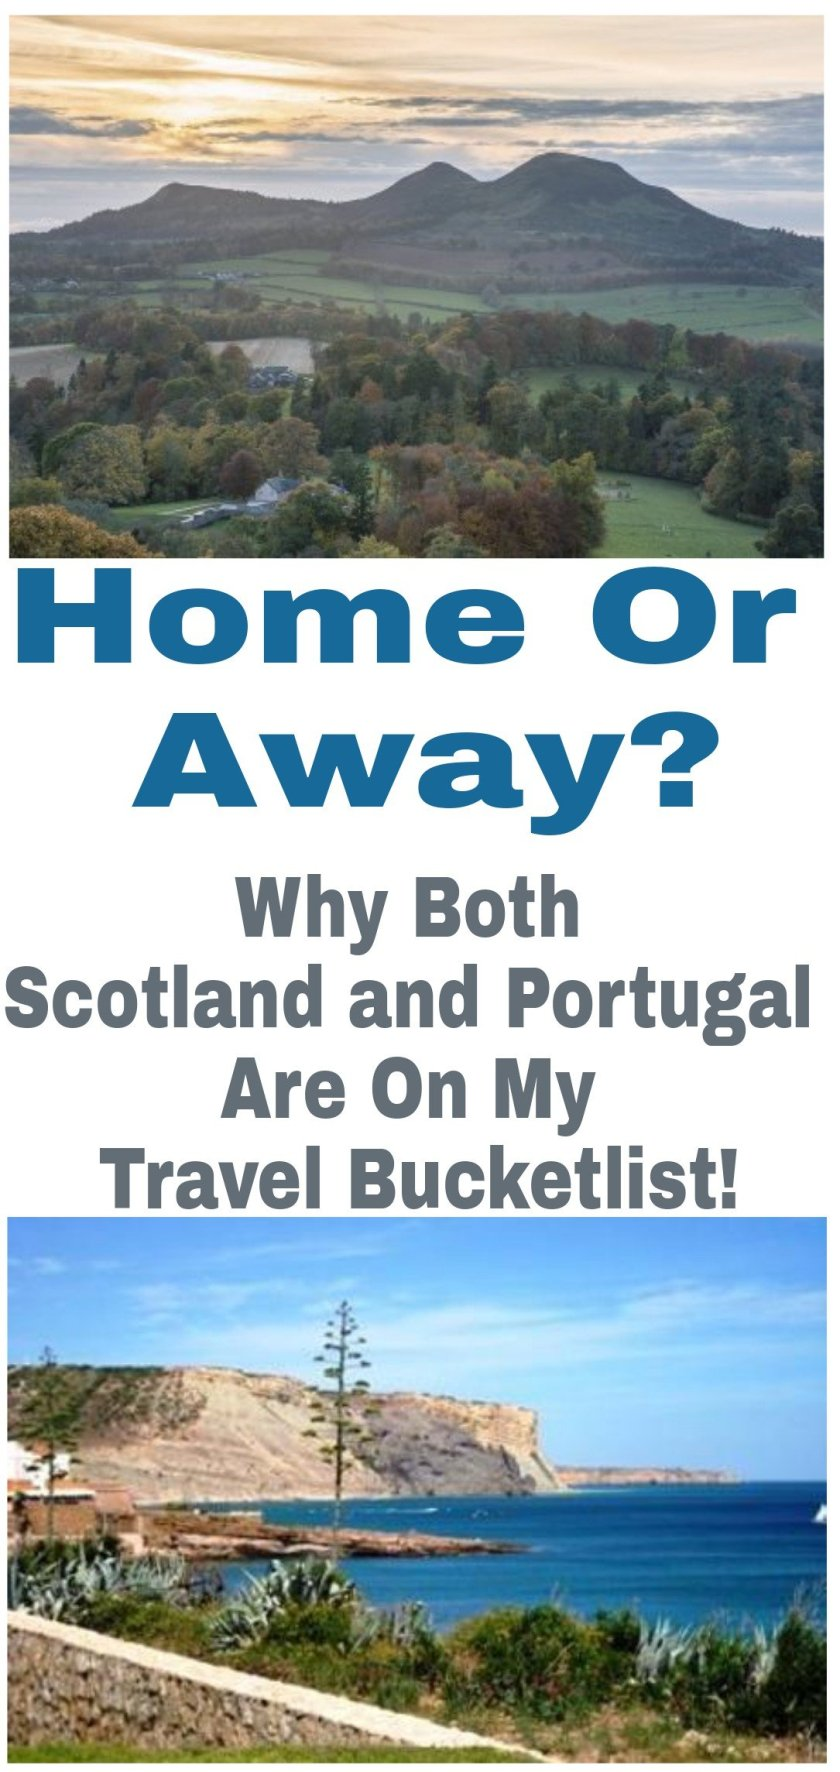 Home Or Away? Why Both Scotland And Portugal Are On My Travel Bucketlist! Image of Scotland and Portugal